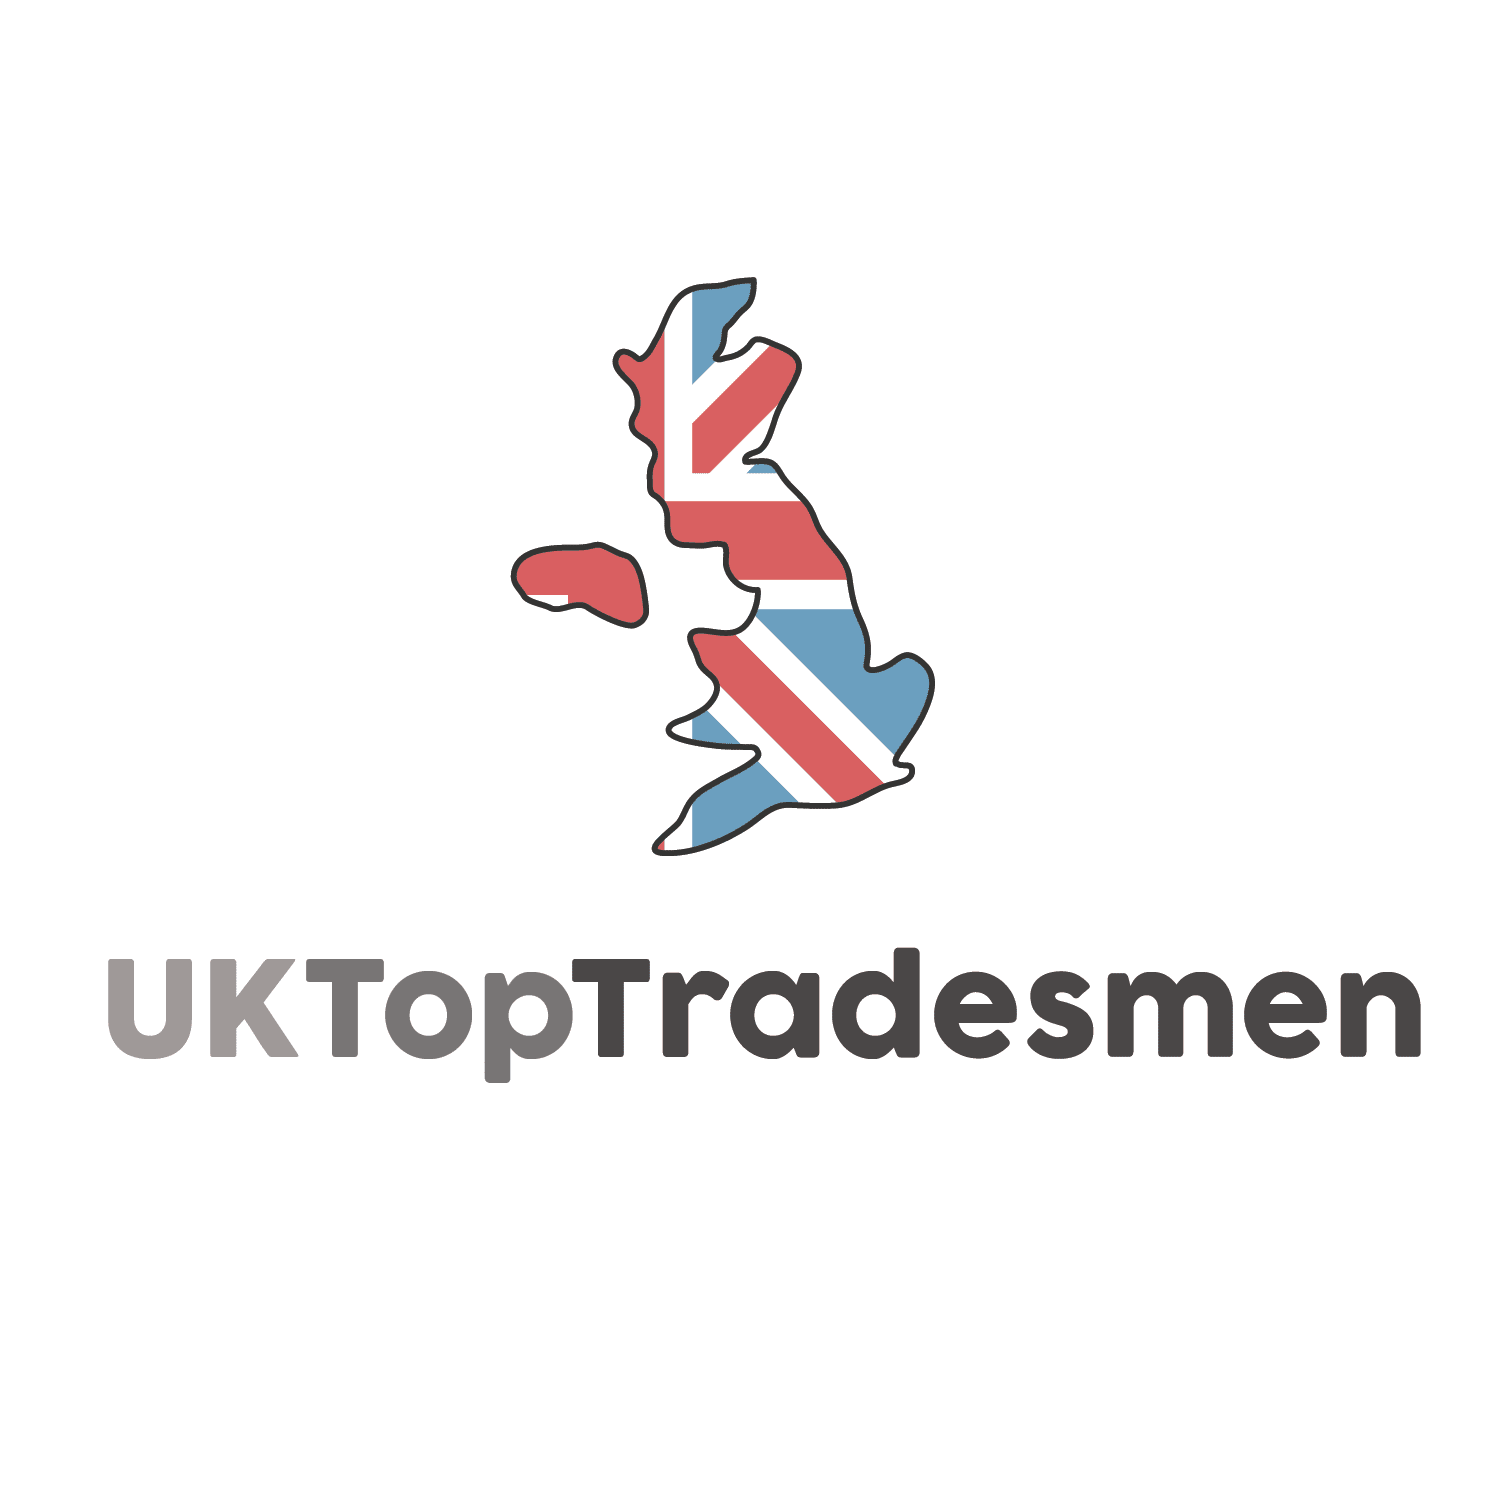 UK Top Tradesmen - Hull, North Yorkshire  - 07429 133344 | ShowMeLocal.com